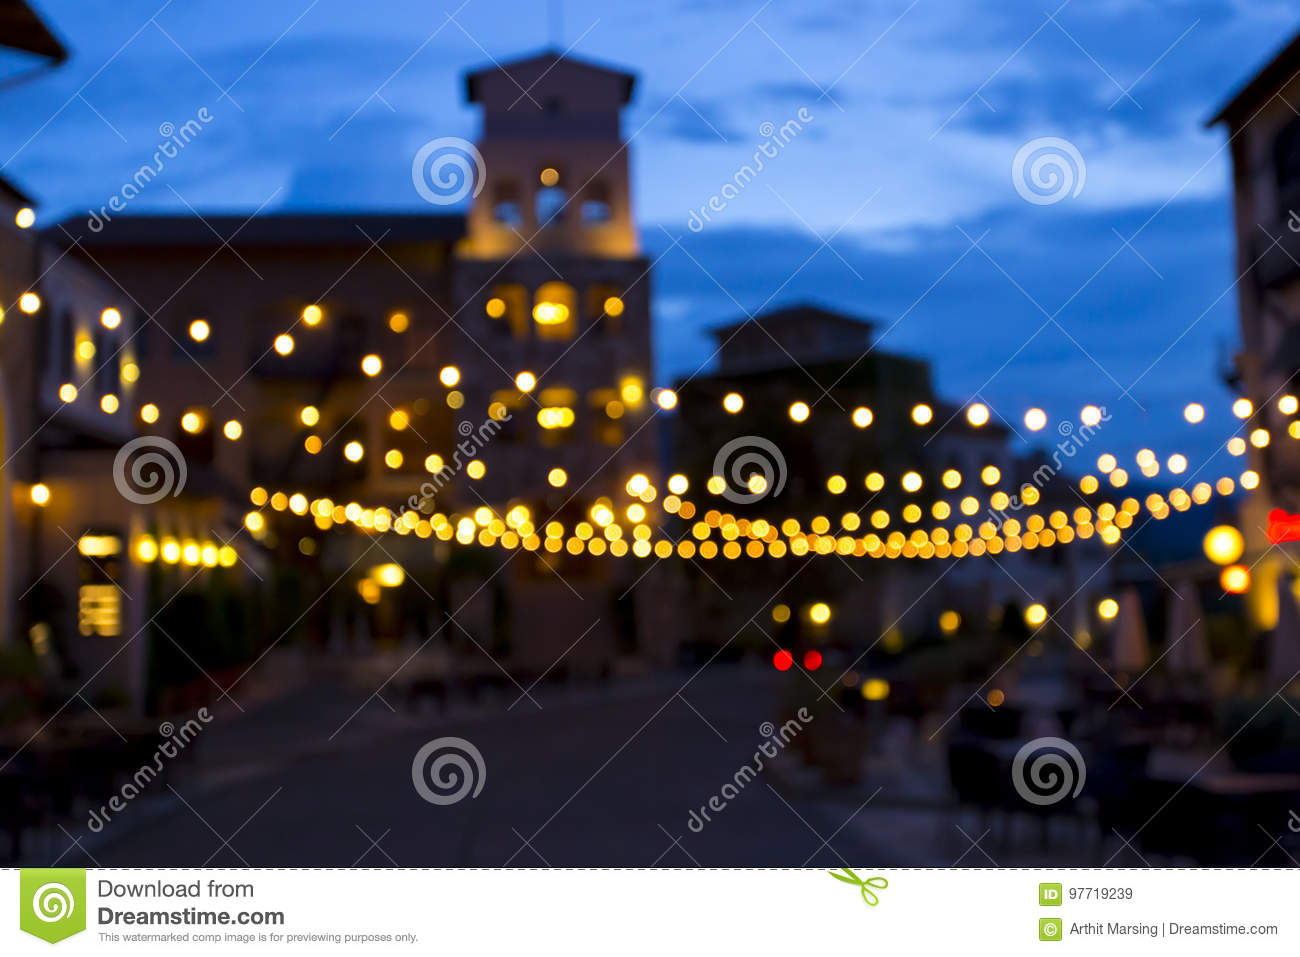 Bokeh background created from picture of decorate light in town square on evening time. Can be use as background for Christmas cel